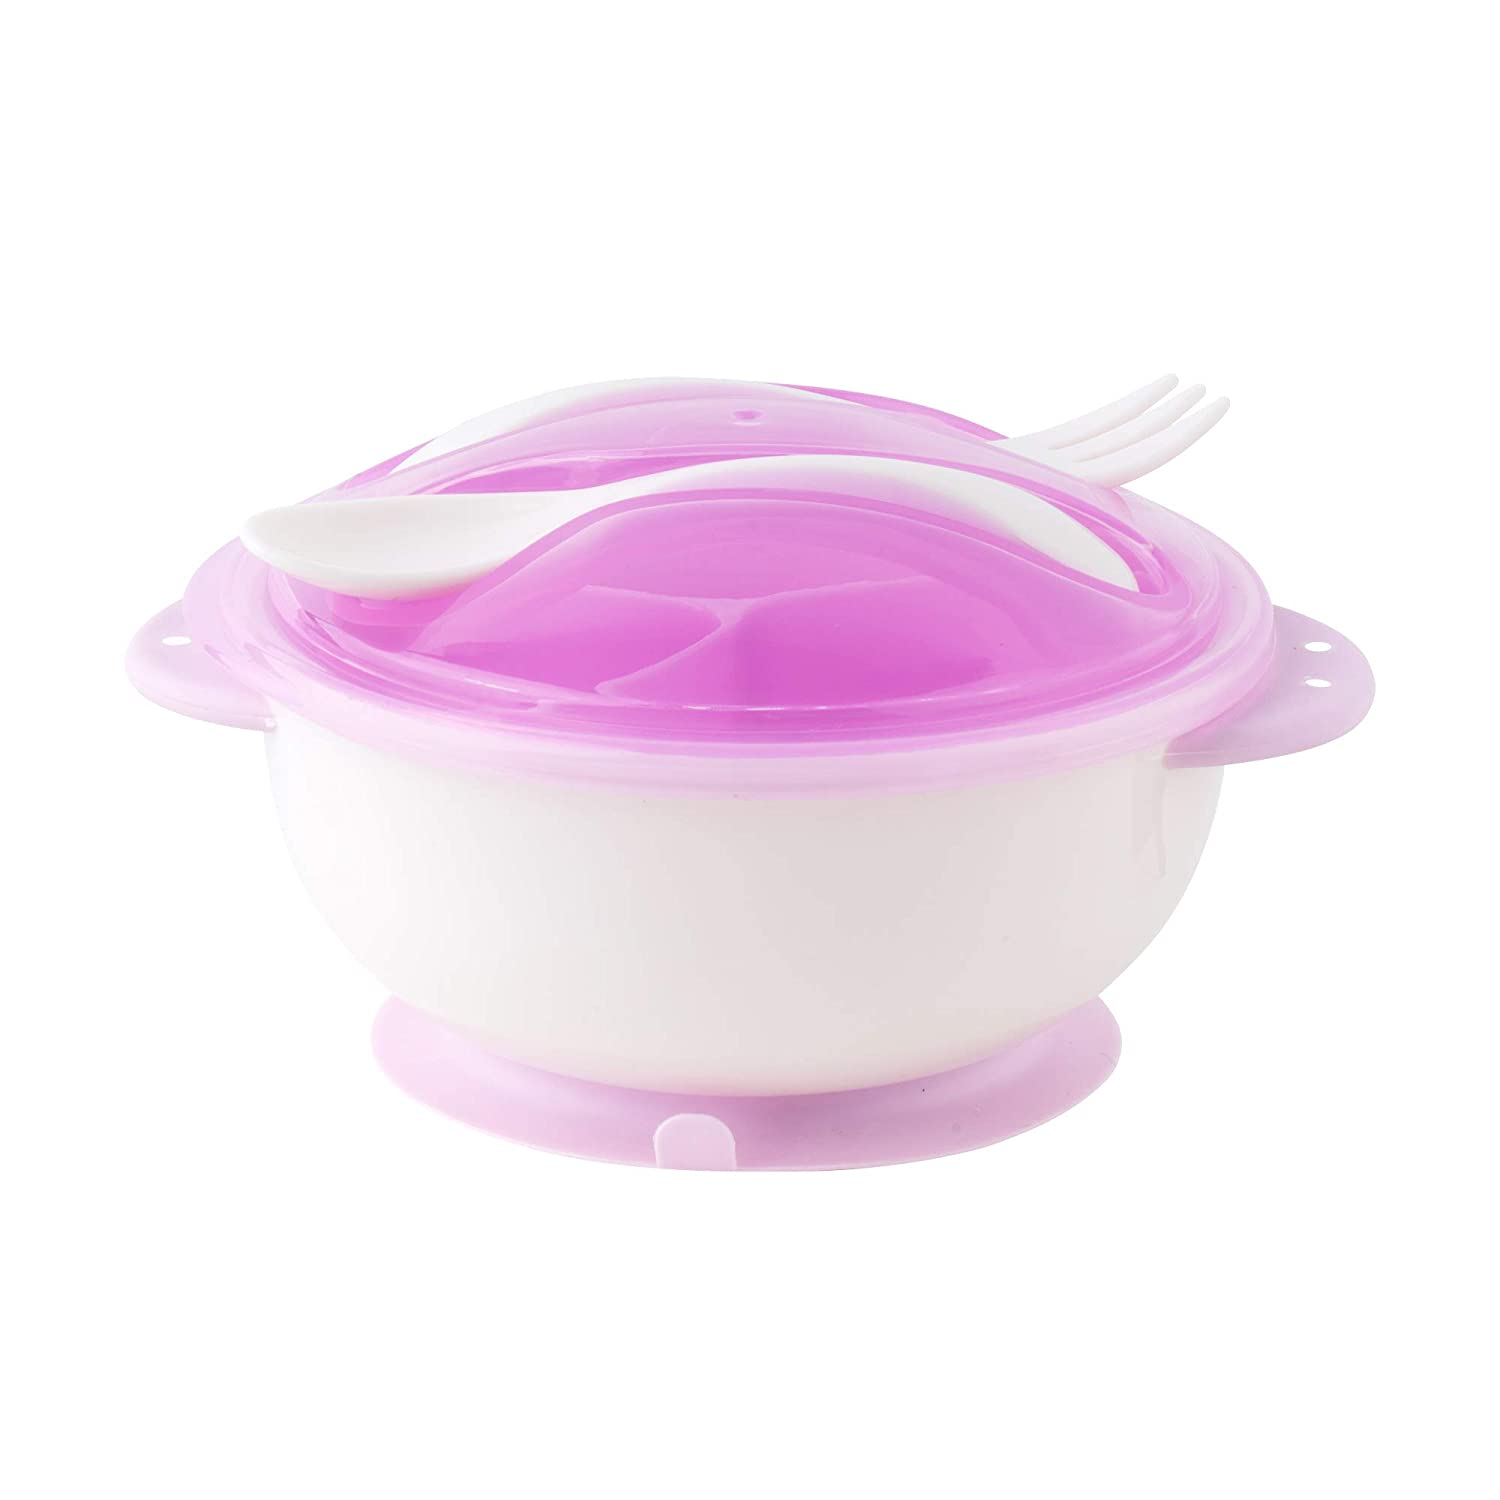 Table-Tot Training Bowl-Safe Feeding Bowl by Juliaire (Purple Bowl with Fork/Spoon Set)